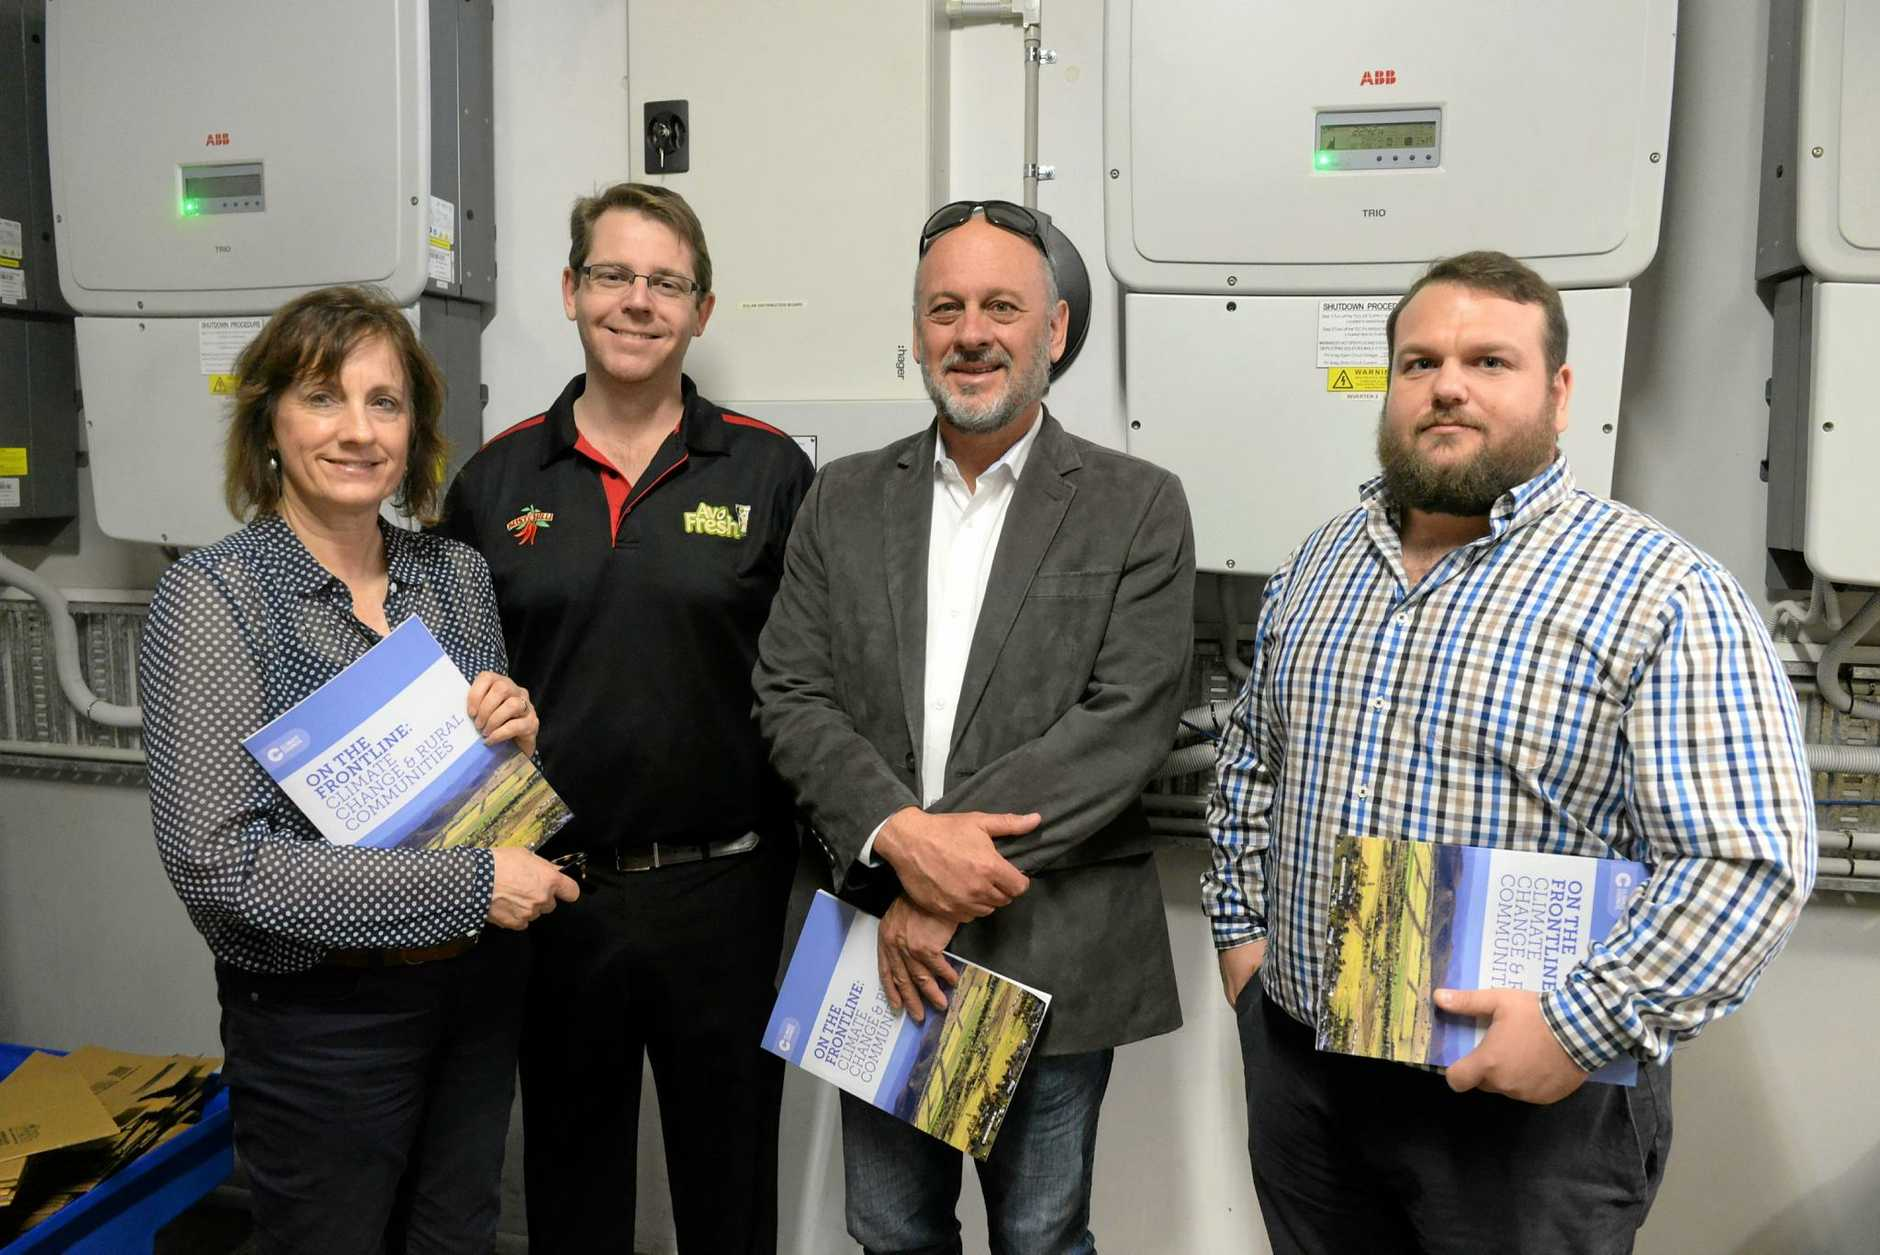 RENEWABLE ENERGY: Lesley Hughes, Austchillis Trent De Paoli, Tim Flannery and GEM Energys Jack Hooper at Austchilli.